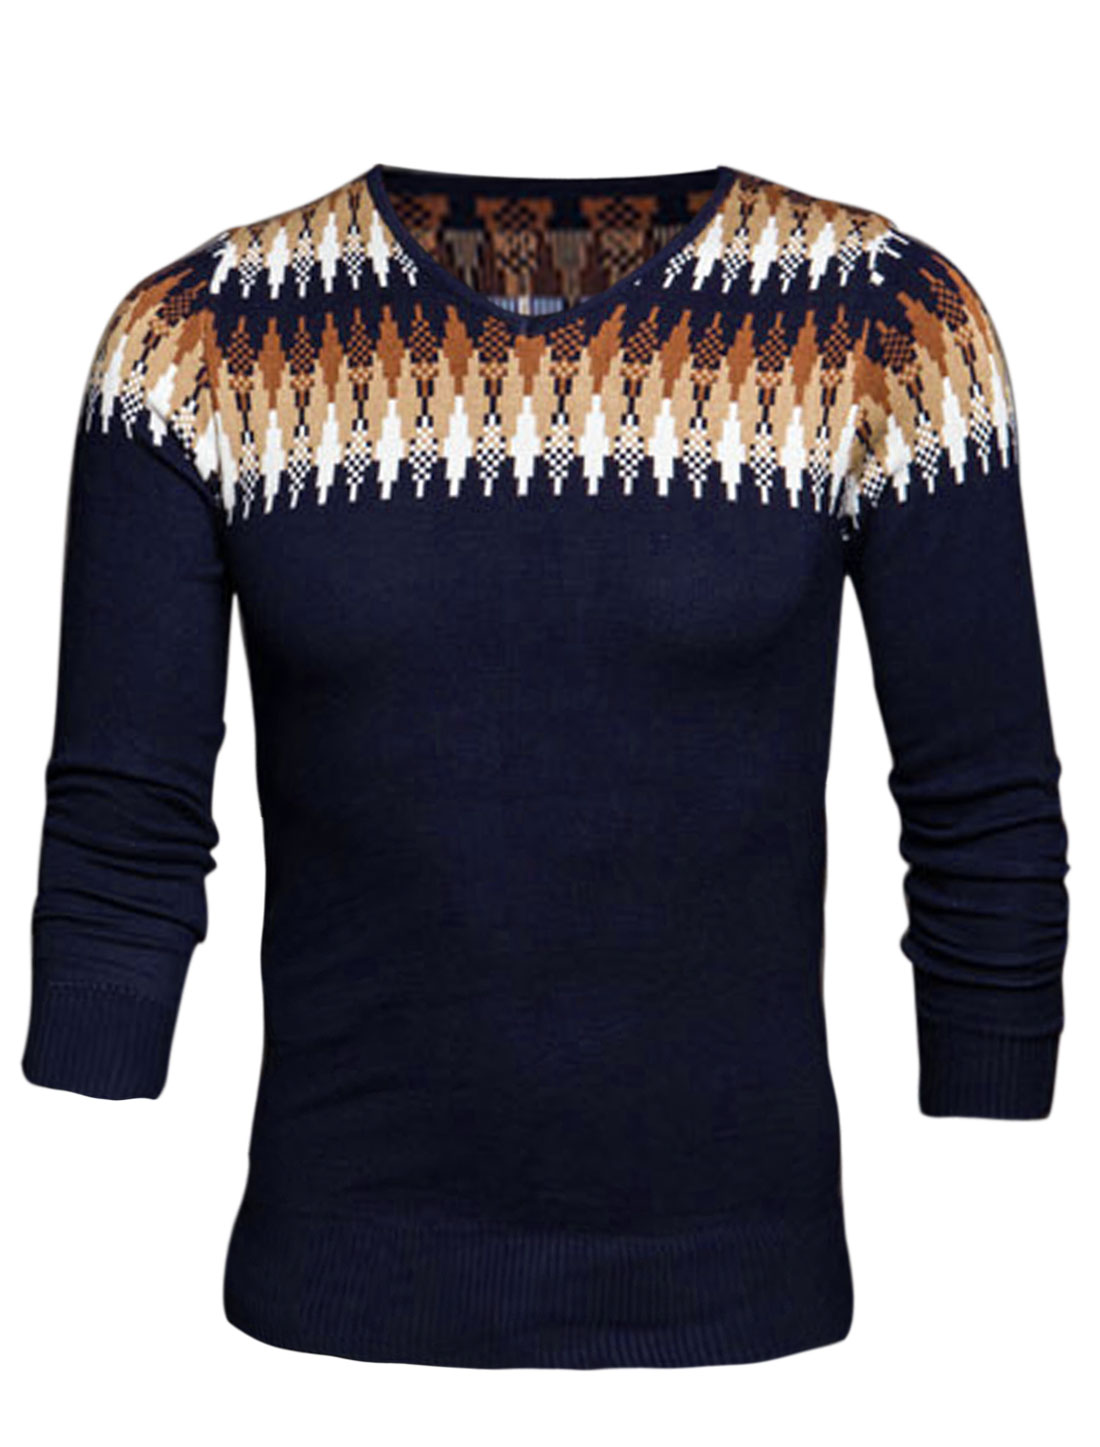 Men Pullover Argyle Pattern Fashionable Knit Shirt Navy Blue S